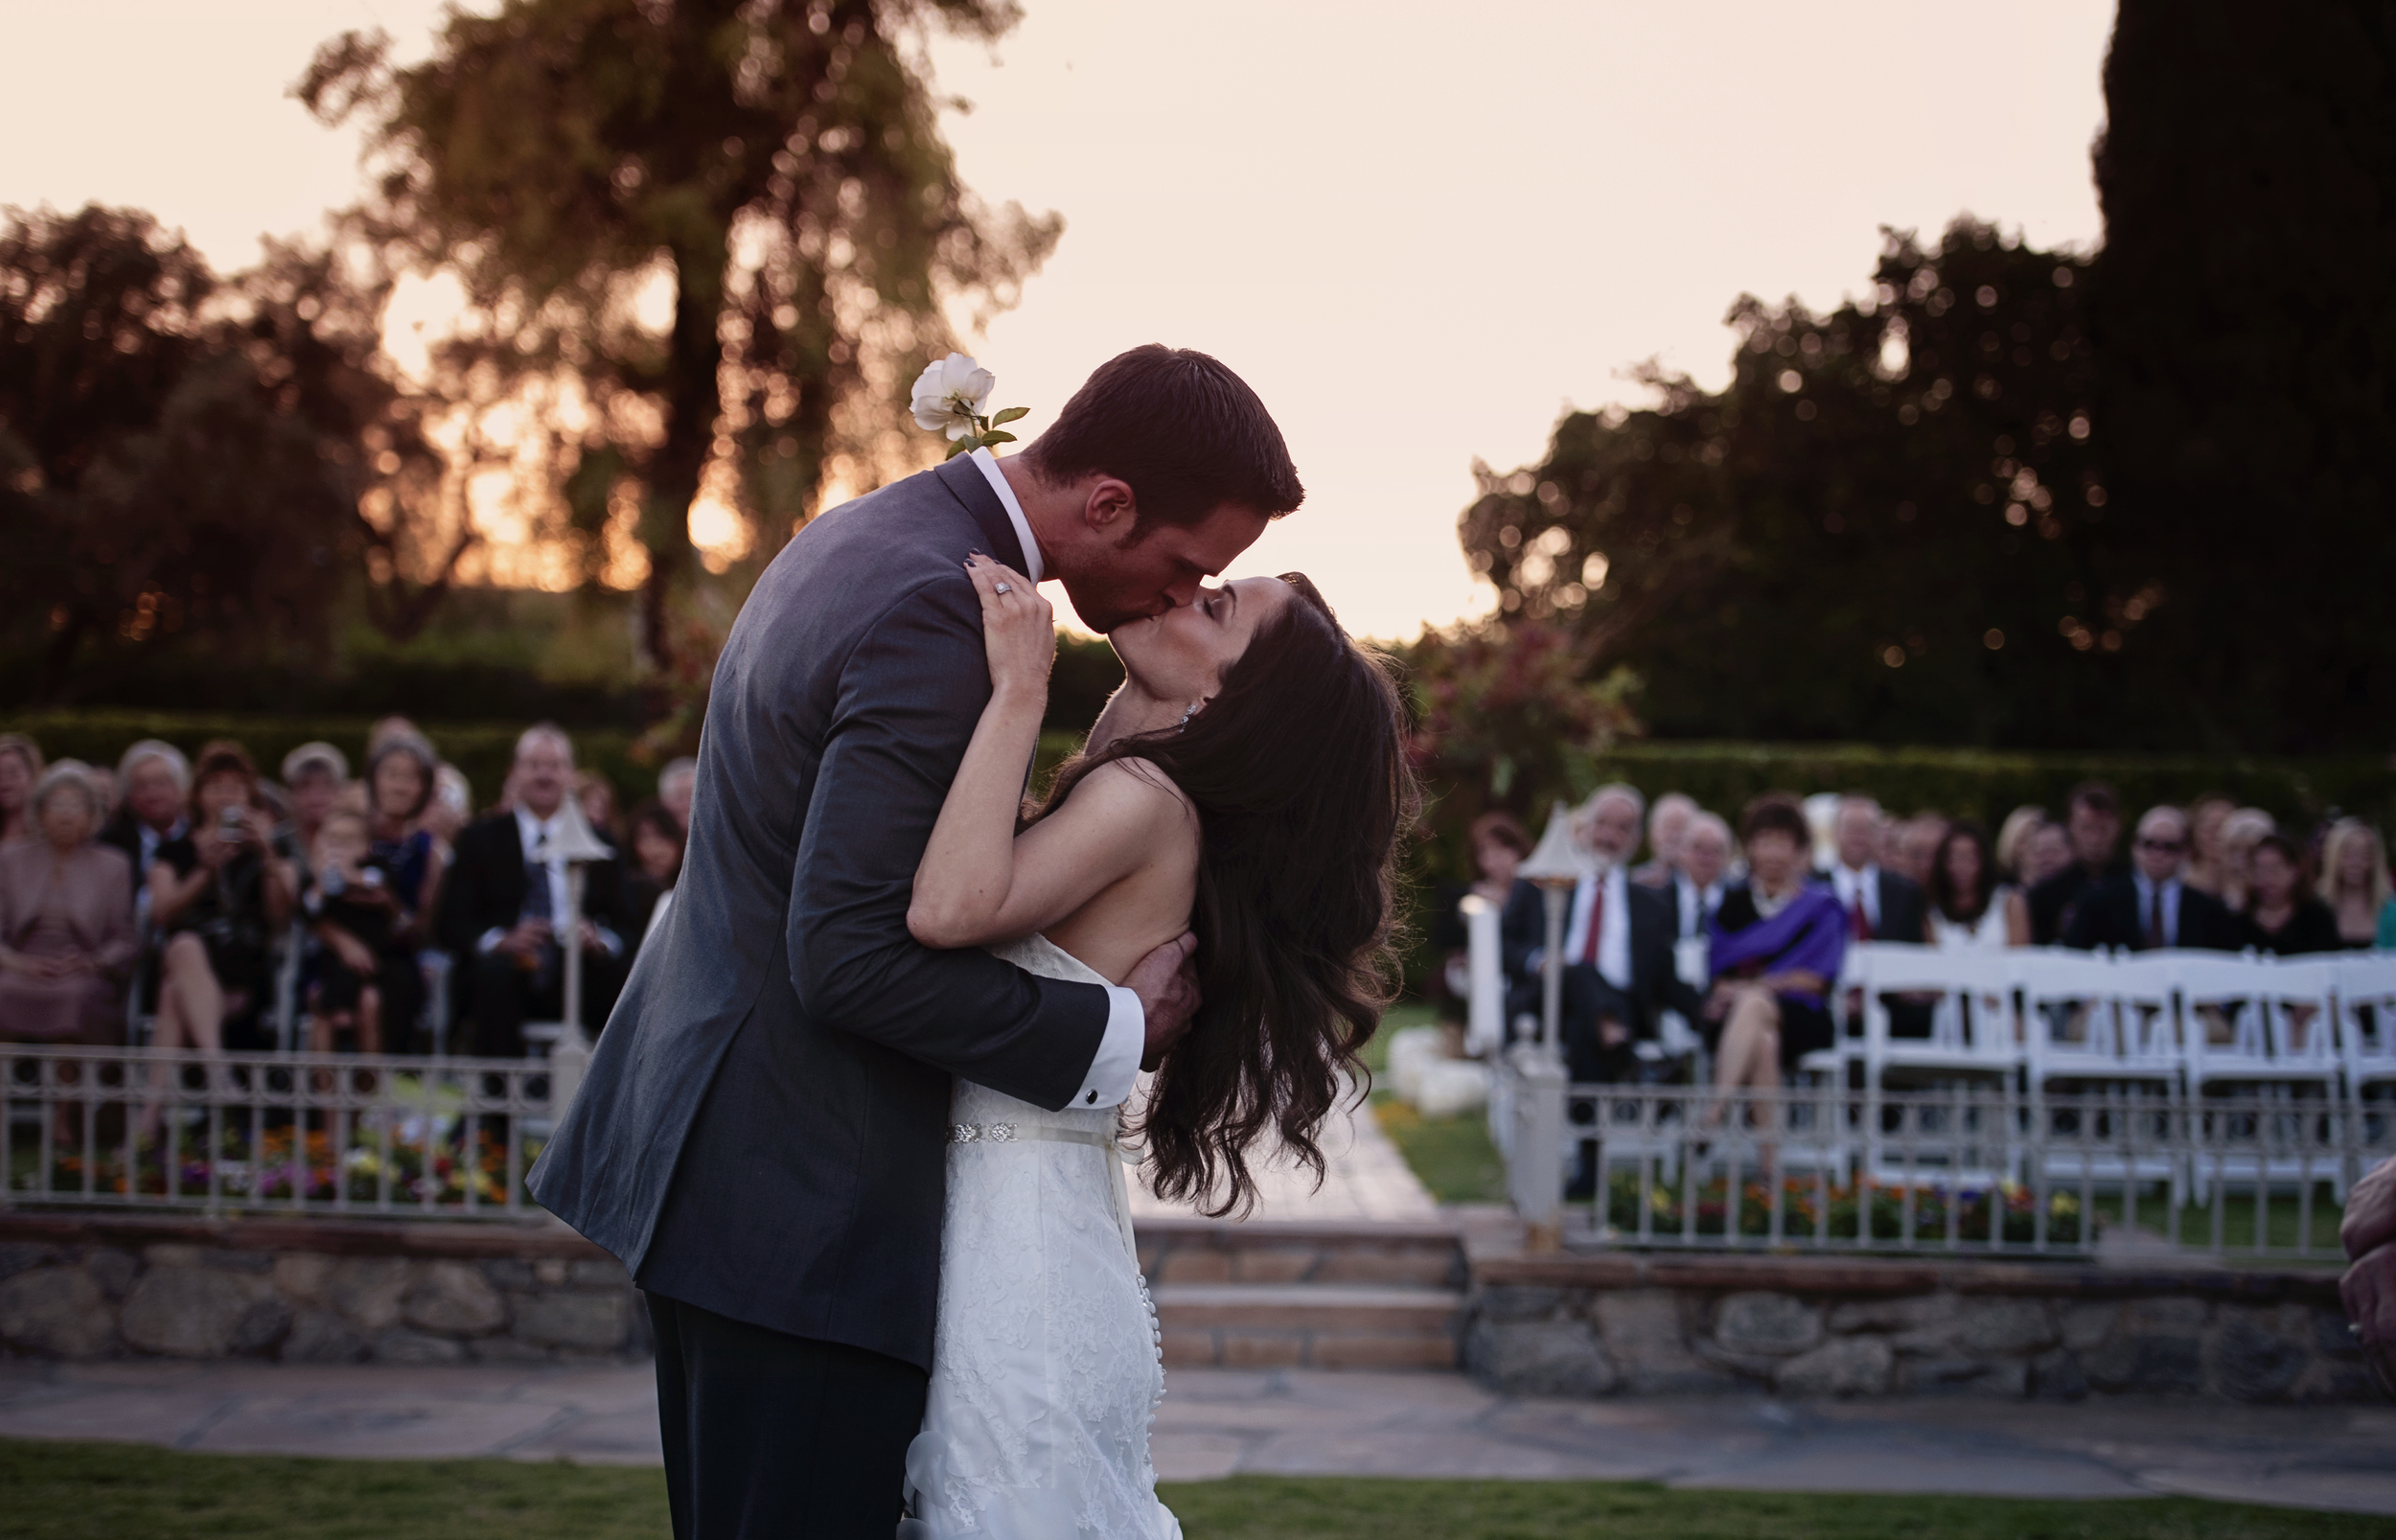 The First Kiss at the Arizona Inn in front of their friends and family.    Destination Wedding Planner:   Andrea Eppolito Events   |  Historical Wedding Venue:   The Arizona Inn   |  Photography:  Raylene Streuber